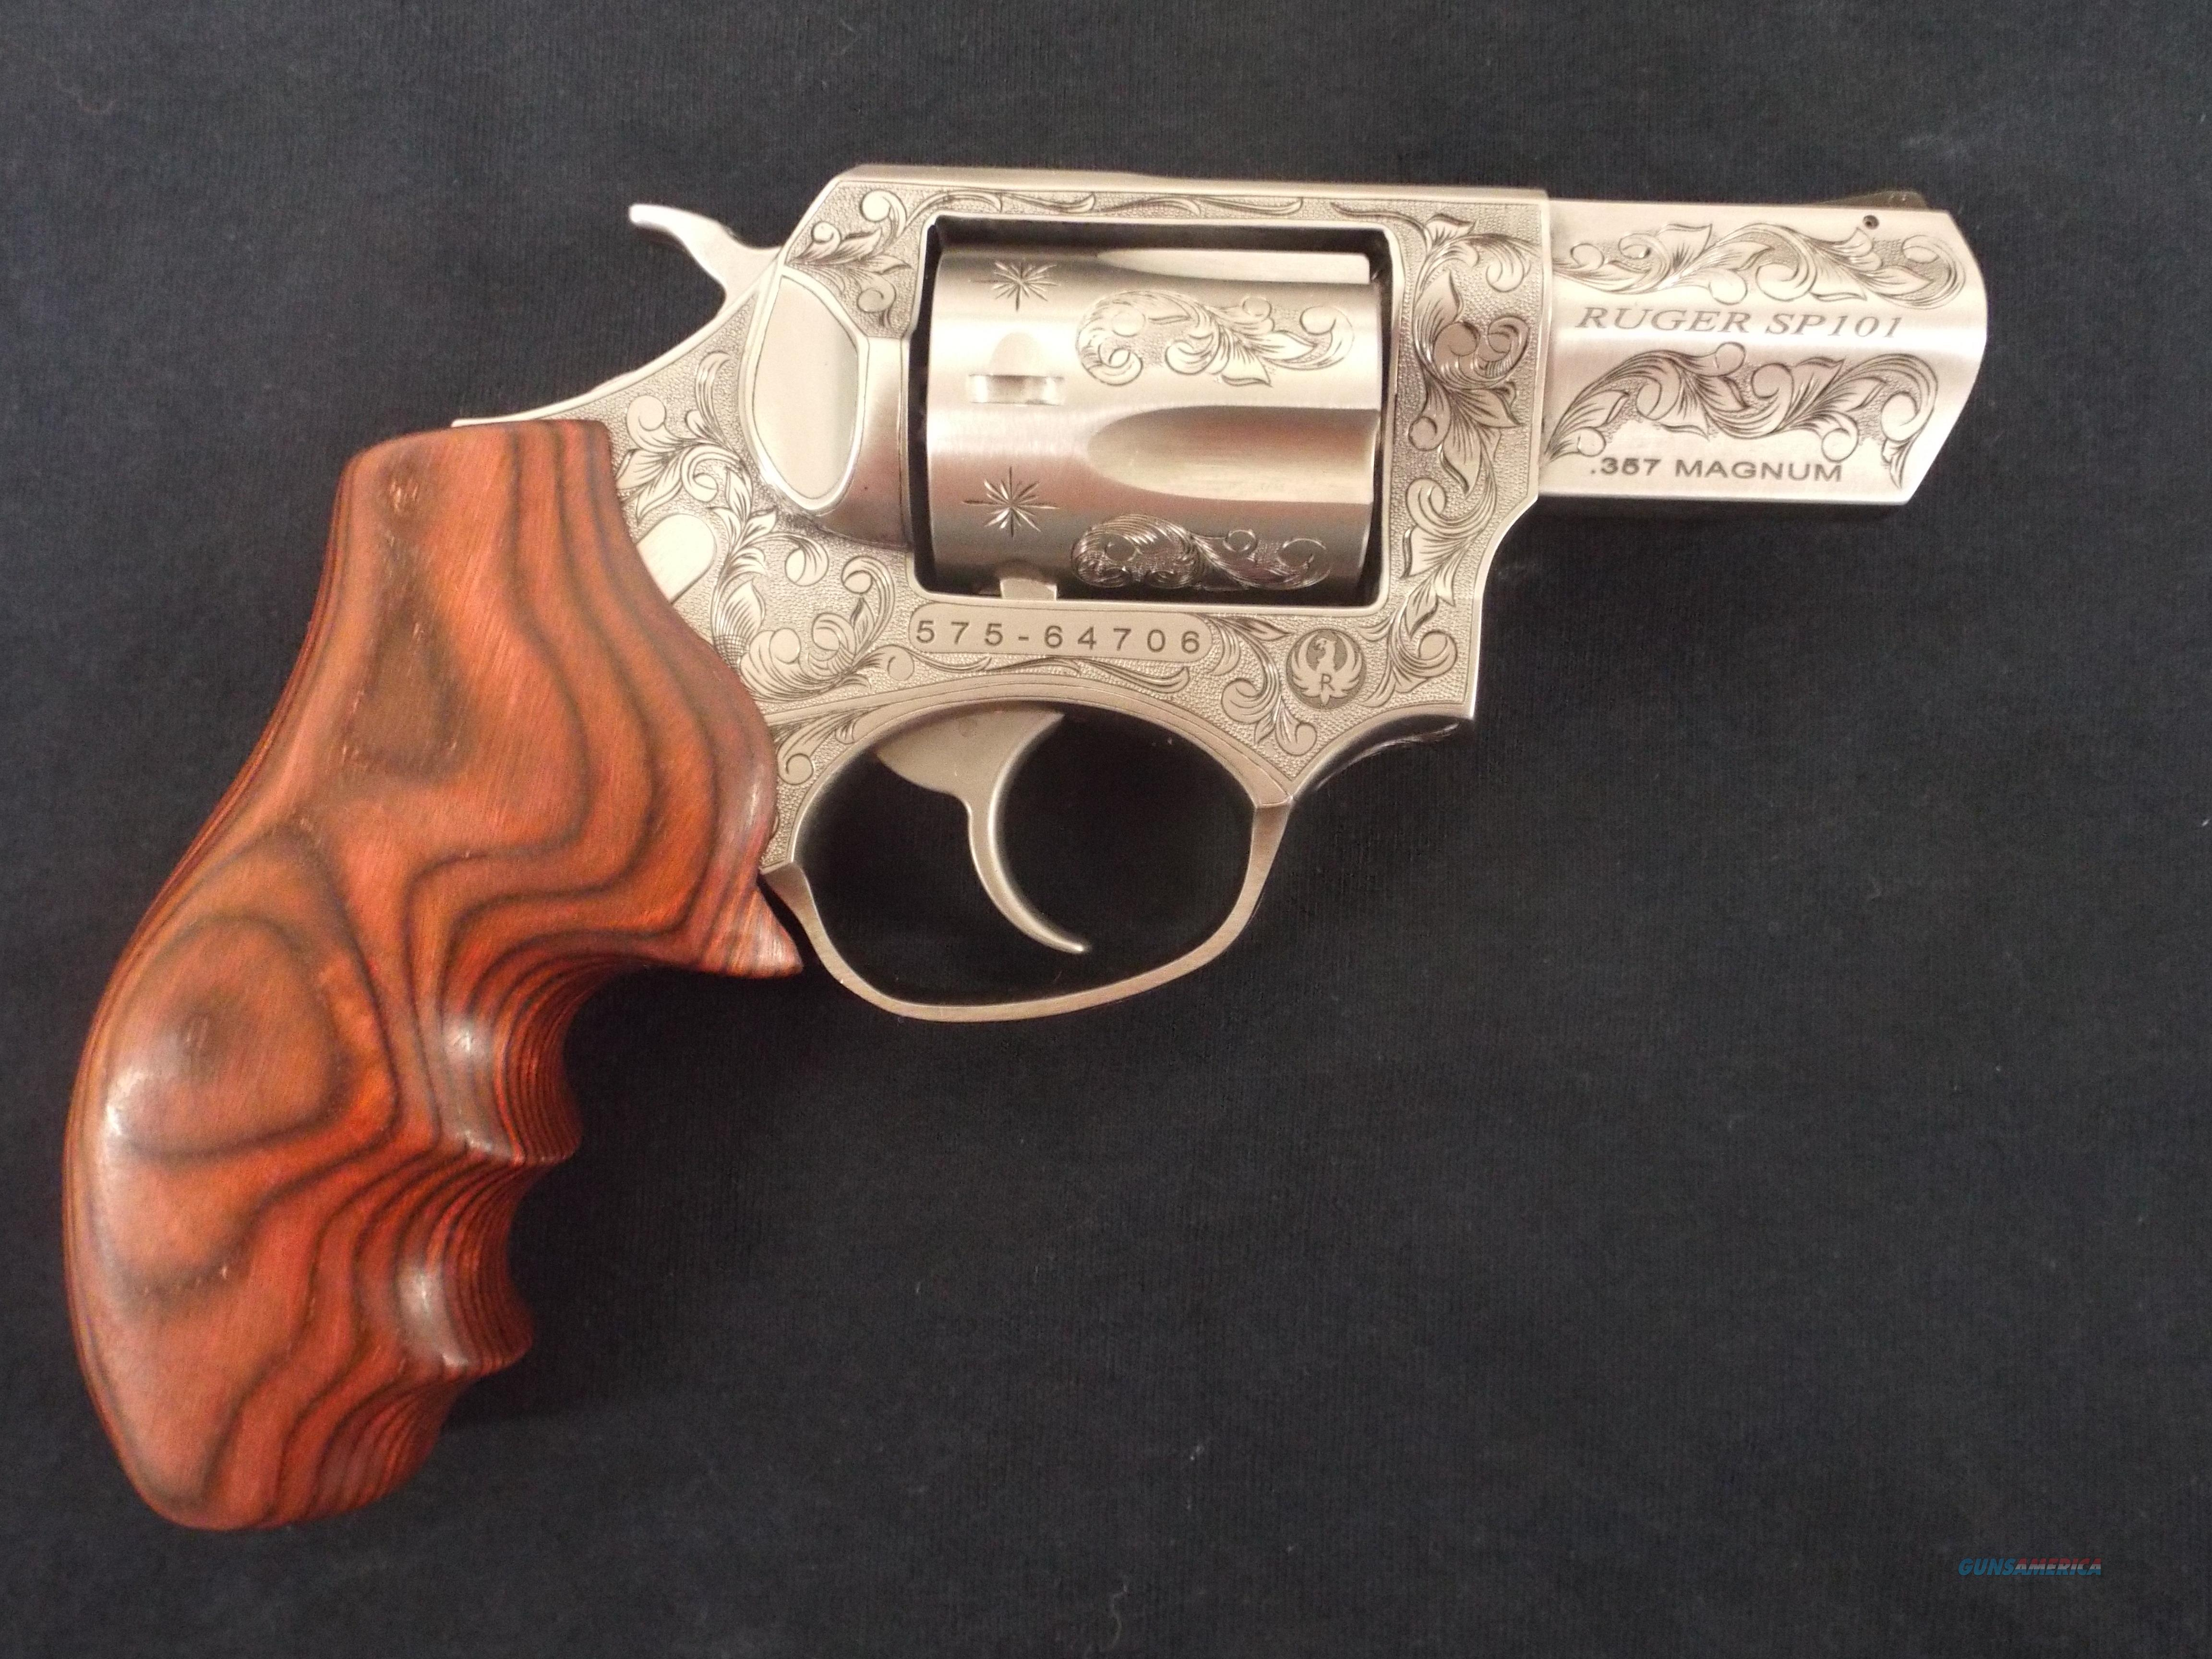 RUGER SP 101 357 MAGNUM FULL ENGRAVED BY RENOWNED ENGRAVER KEN SMITH   Guns > Pistols > Ruger Double Action Revolver > SP101 Type